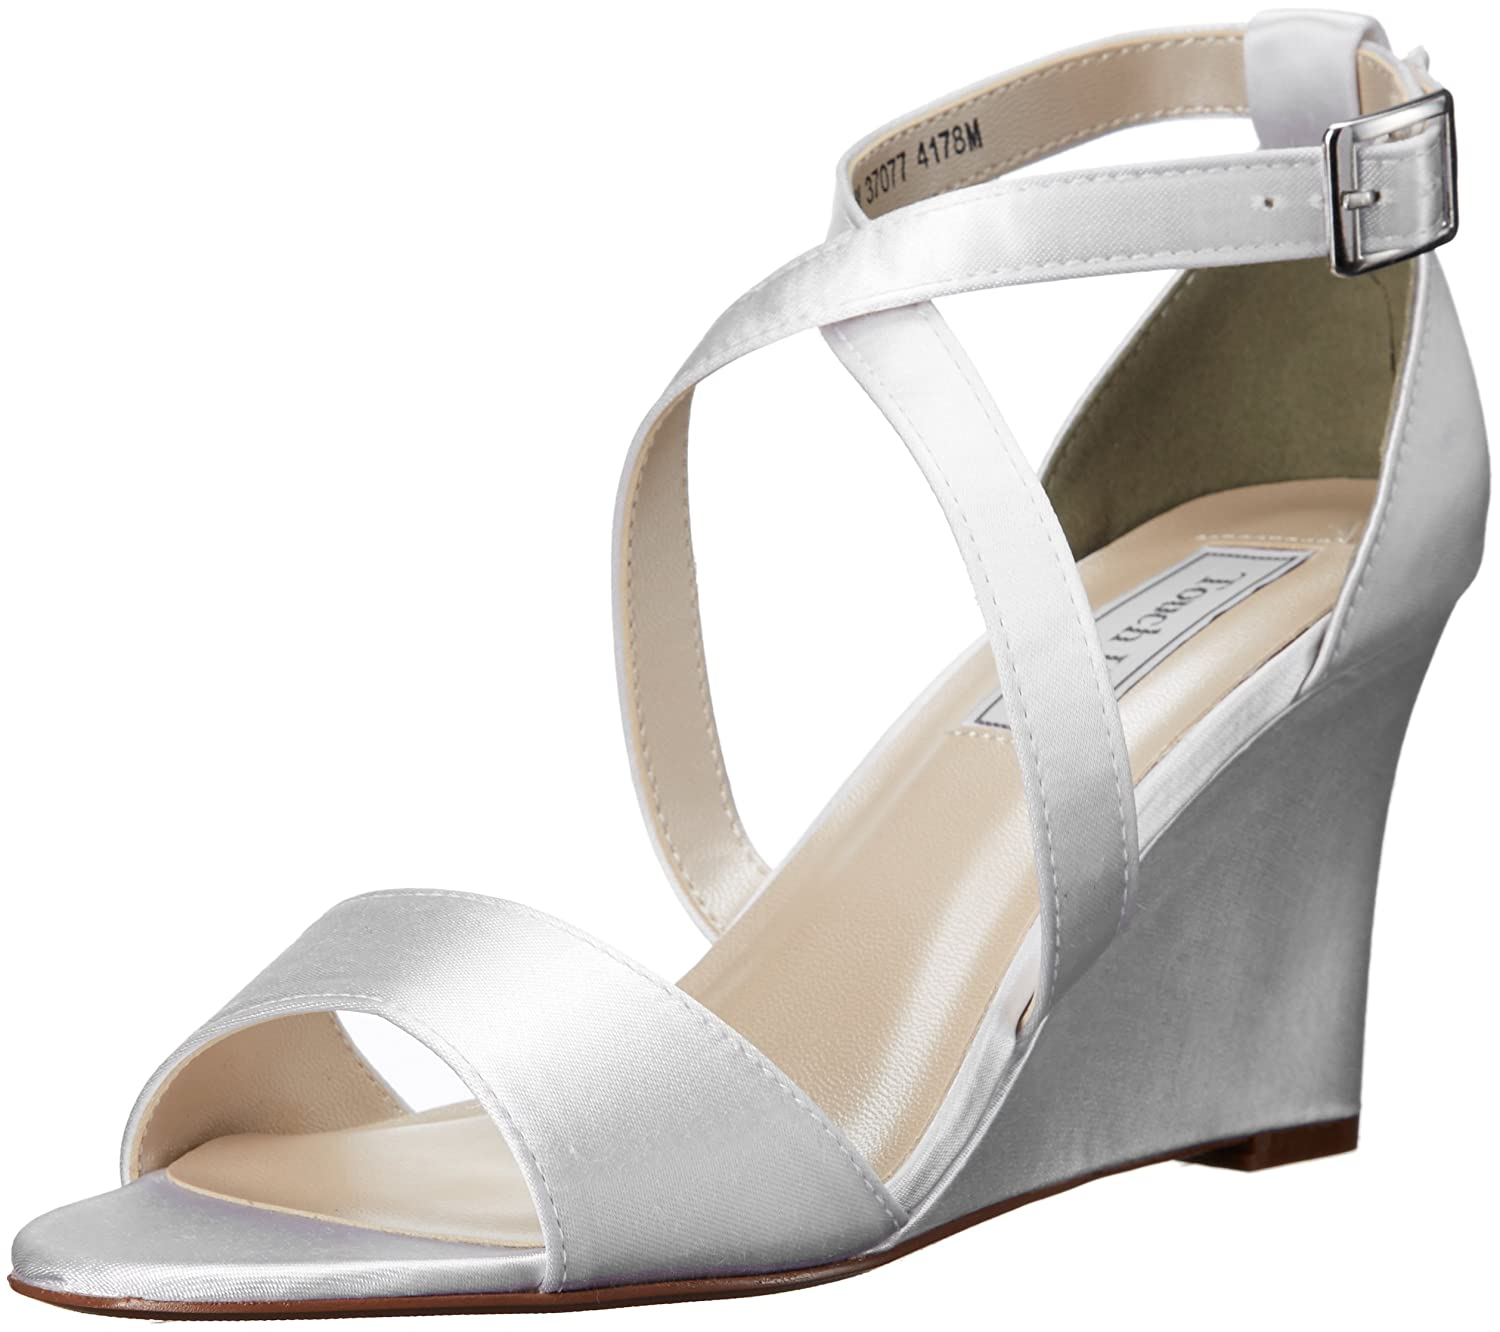 Touch Ups Women's Jenna Wedge Sandal B01AKAXMZO 7 B(M) US|White